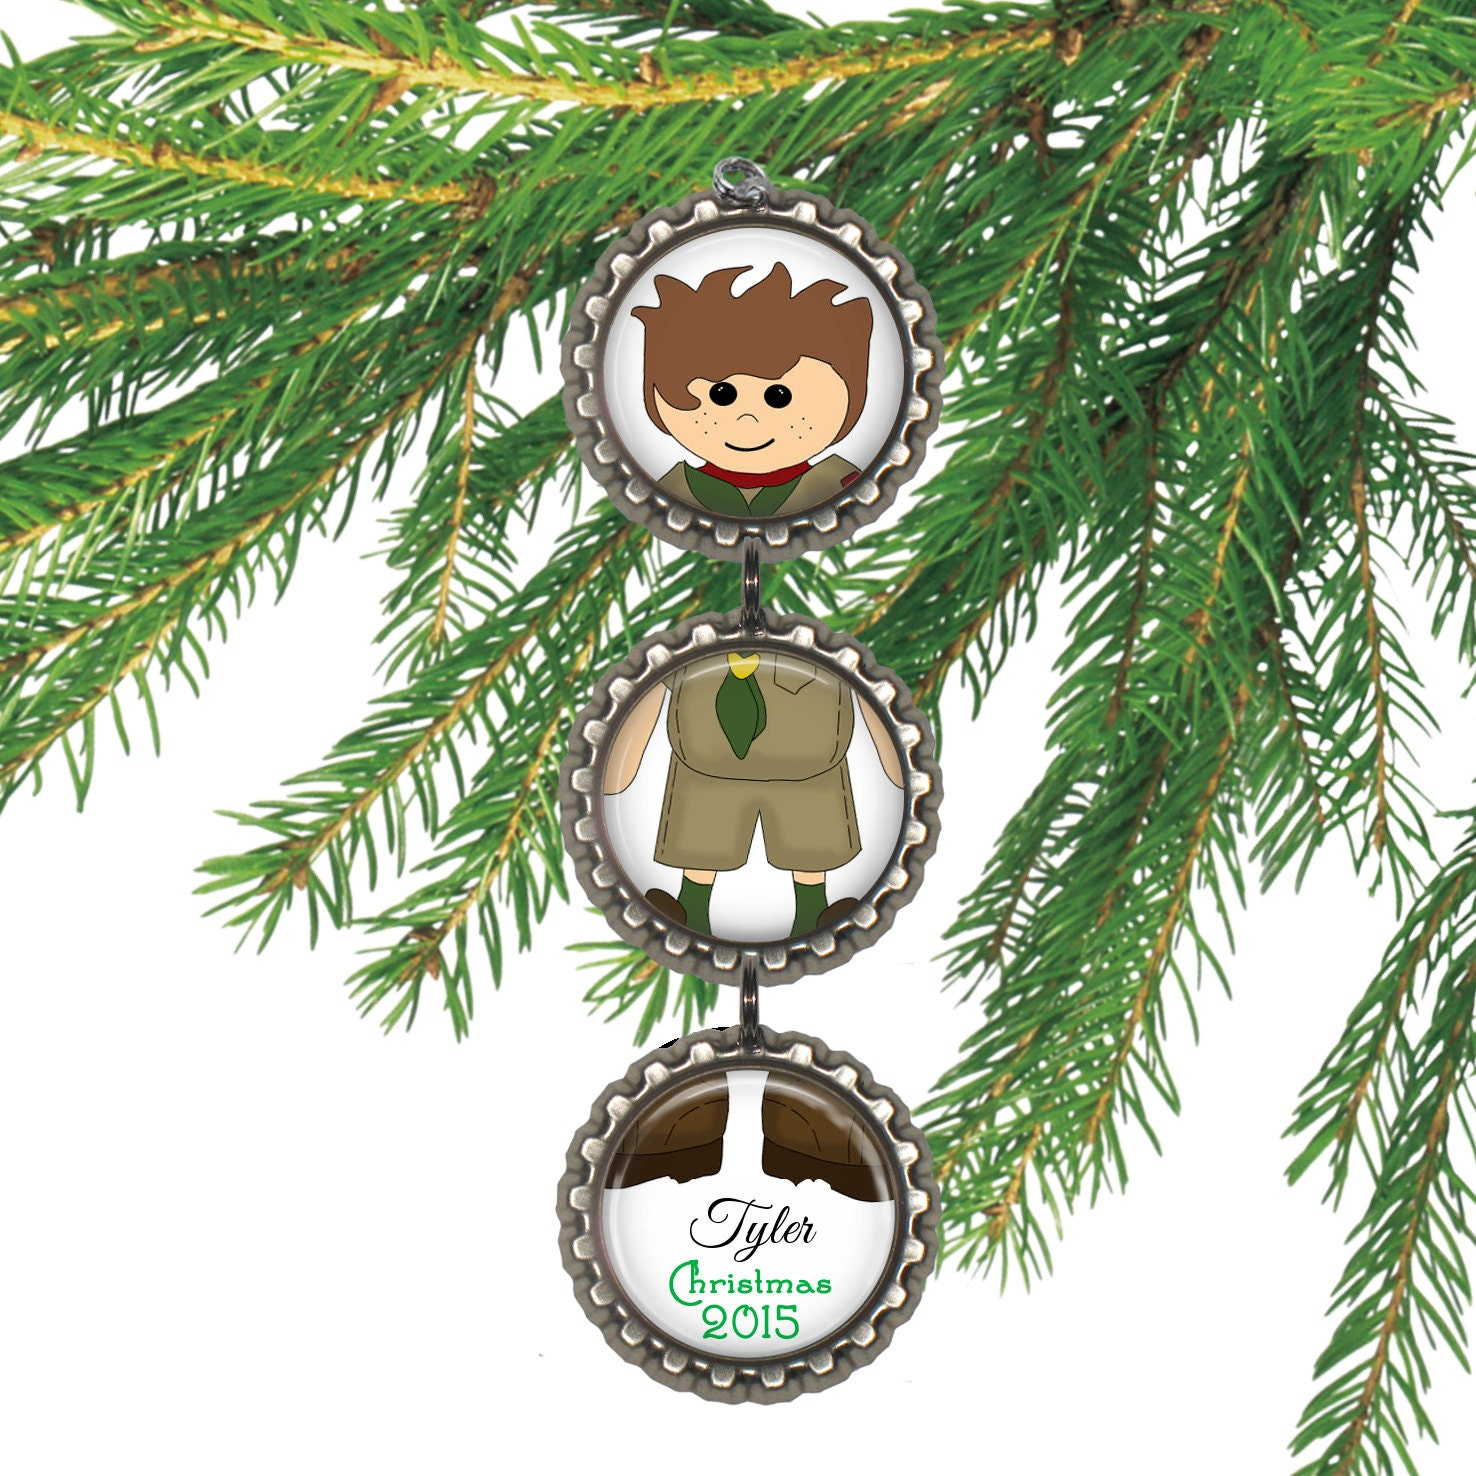 Sale scout christmas ornament personalized christmas for Christmas ornaments sale